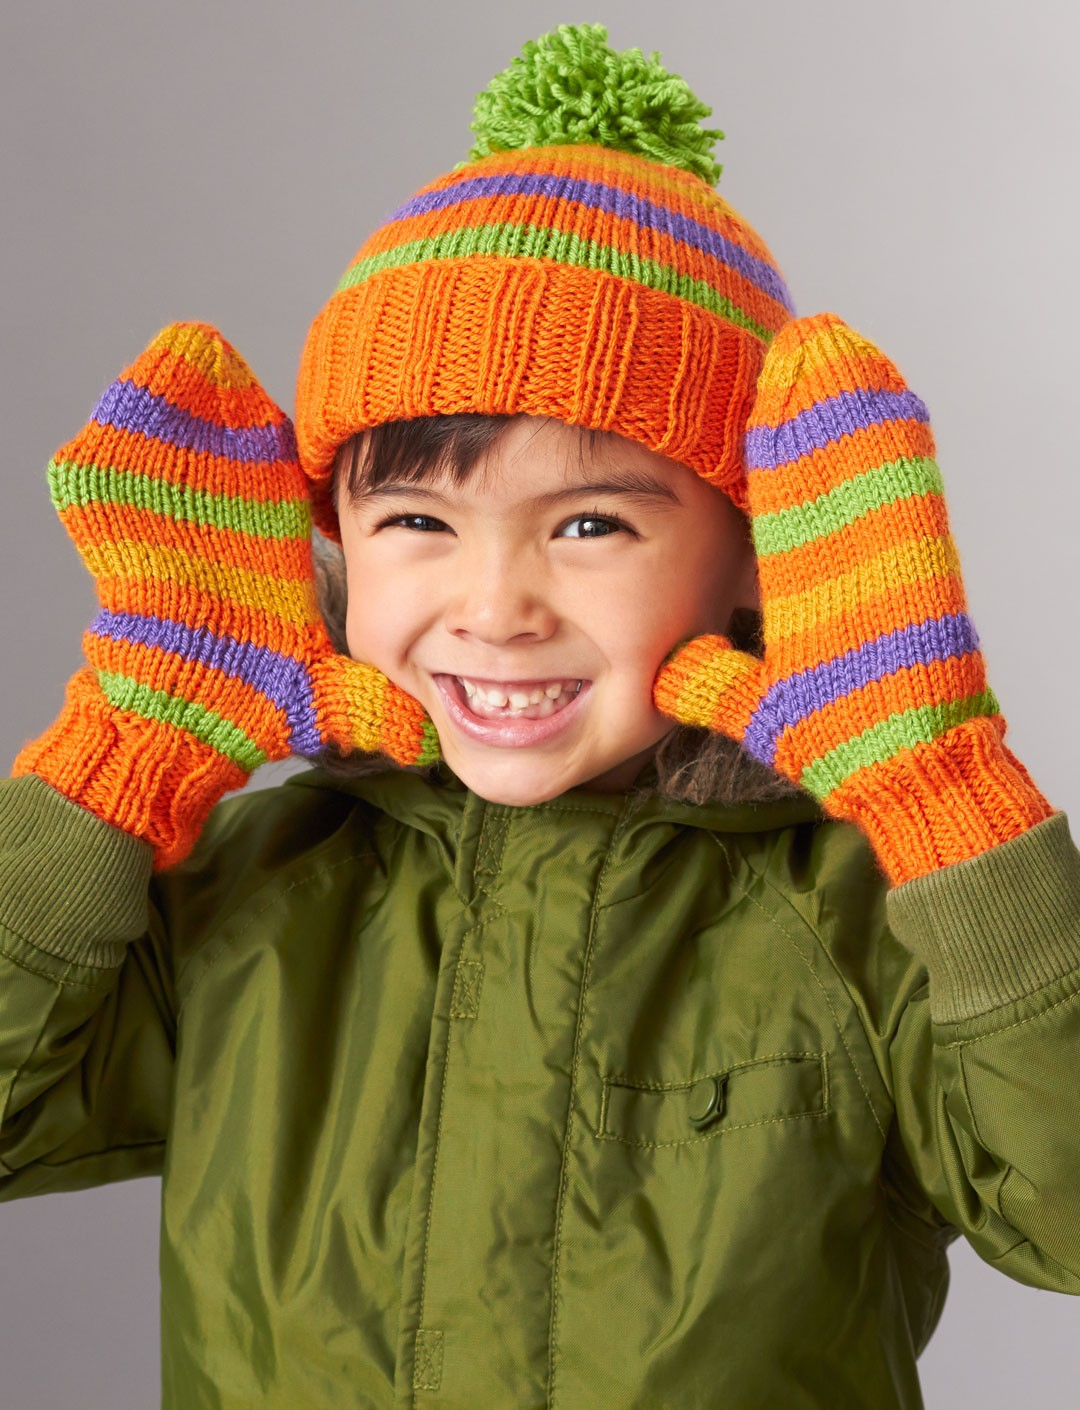 Knitting Pattern For Children s Mittens On Two Needles : Patons Striped Basic Hat and Mittens 4 Needles, Knit Pattern Yarnspirations